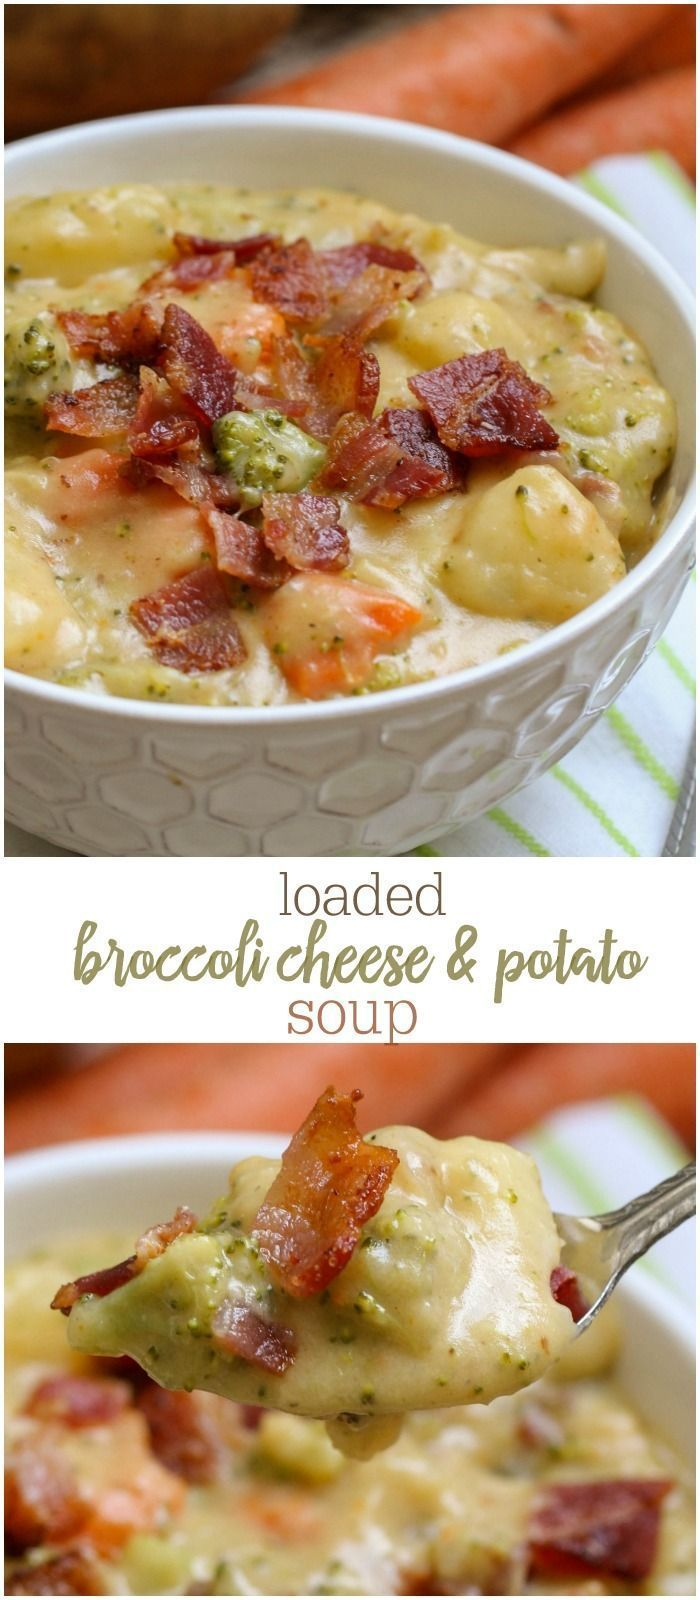 Loaded Broccoli, Cheese and Potato Soup - so full of flavor and so many delicious ingredients. This soup will keep you warm and full any time of year! { lilluna.com }